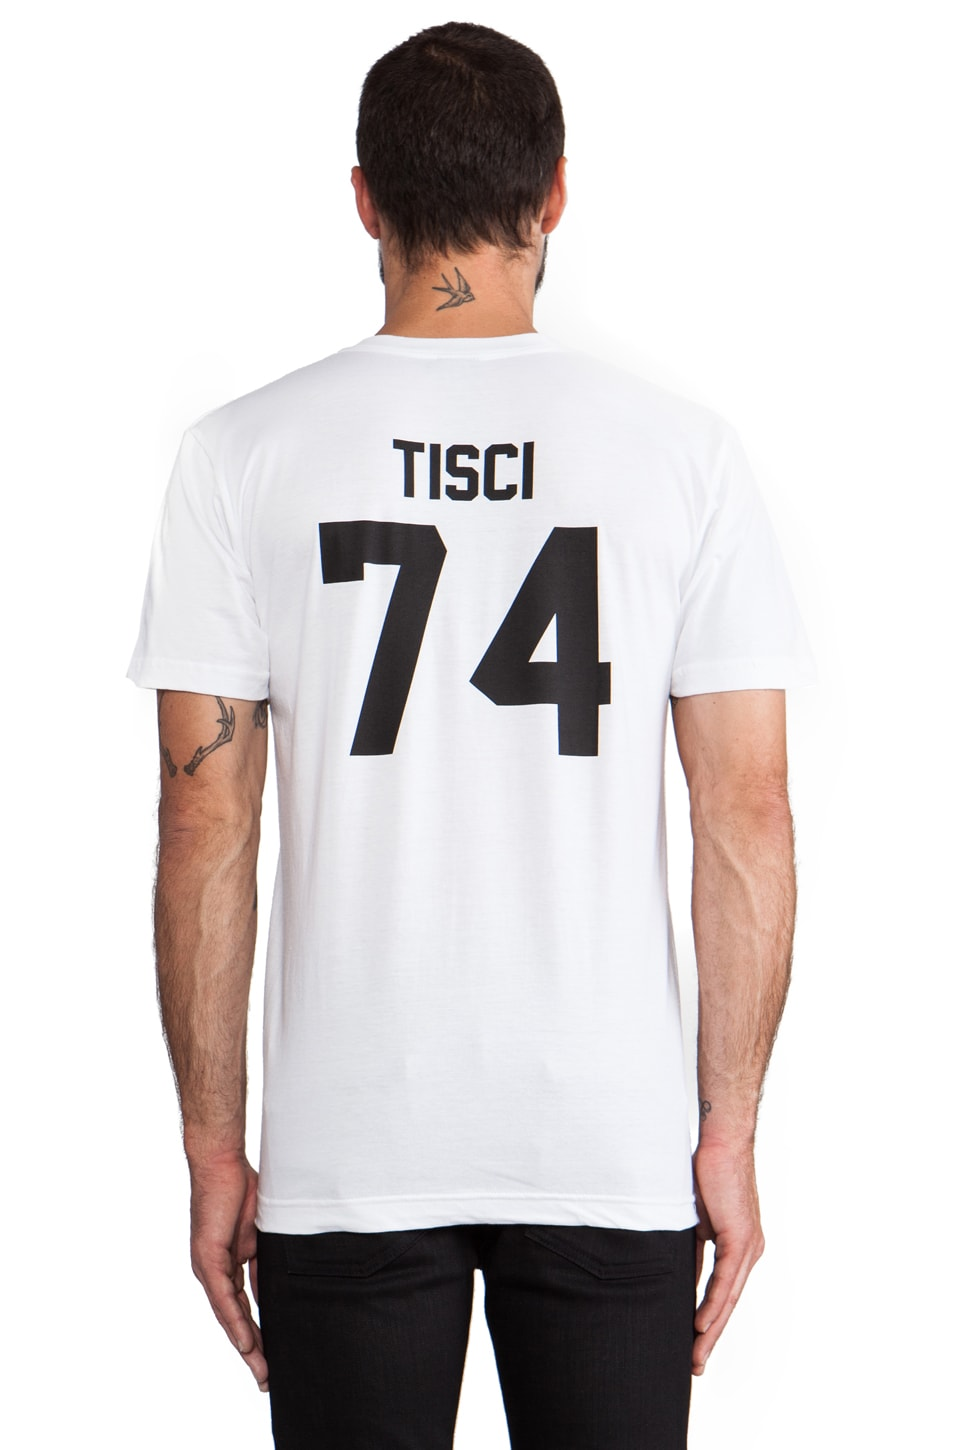 LPD New York Tisci Tee with Black in White